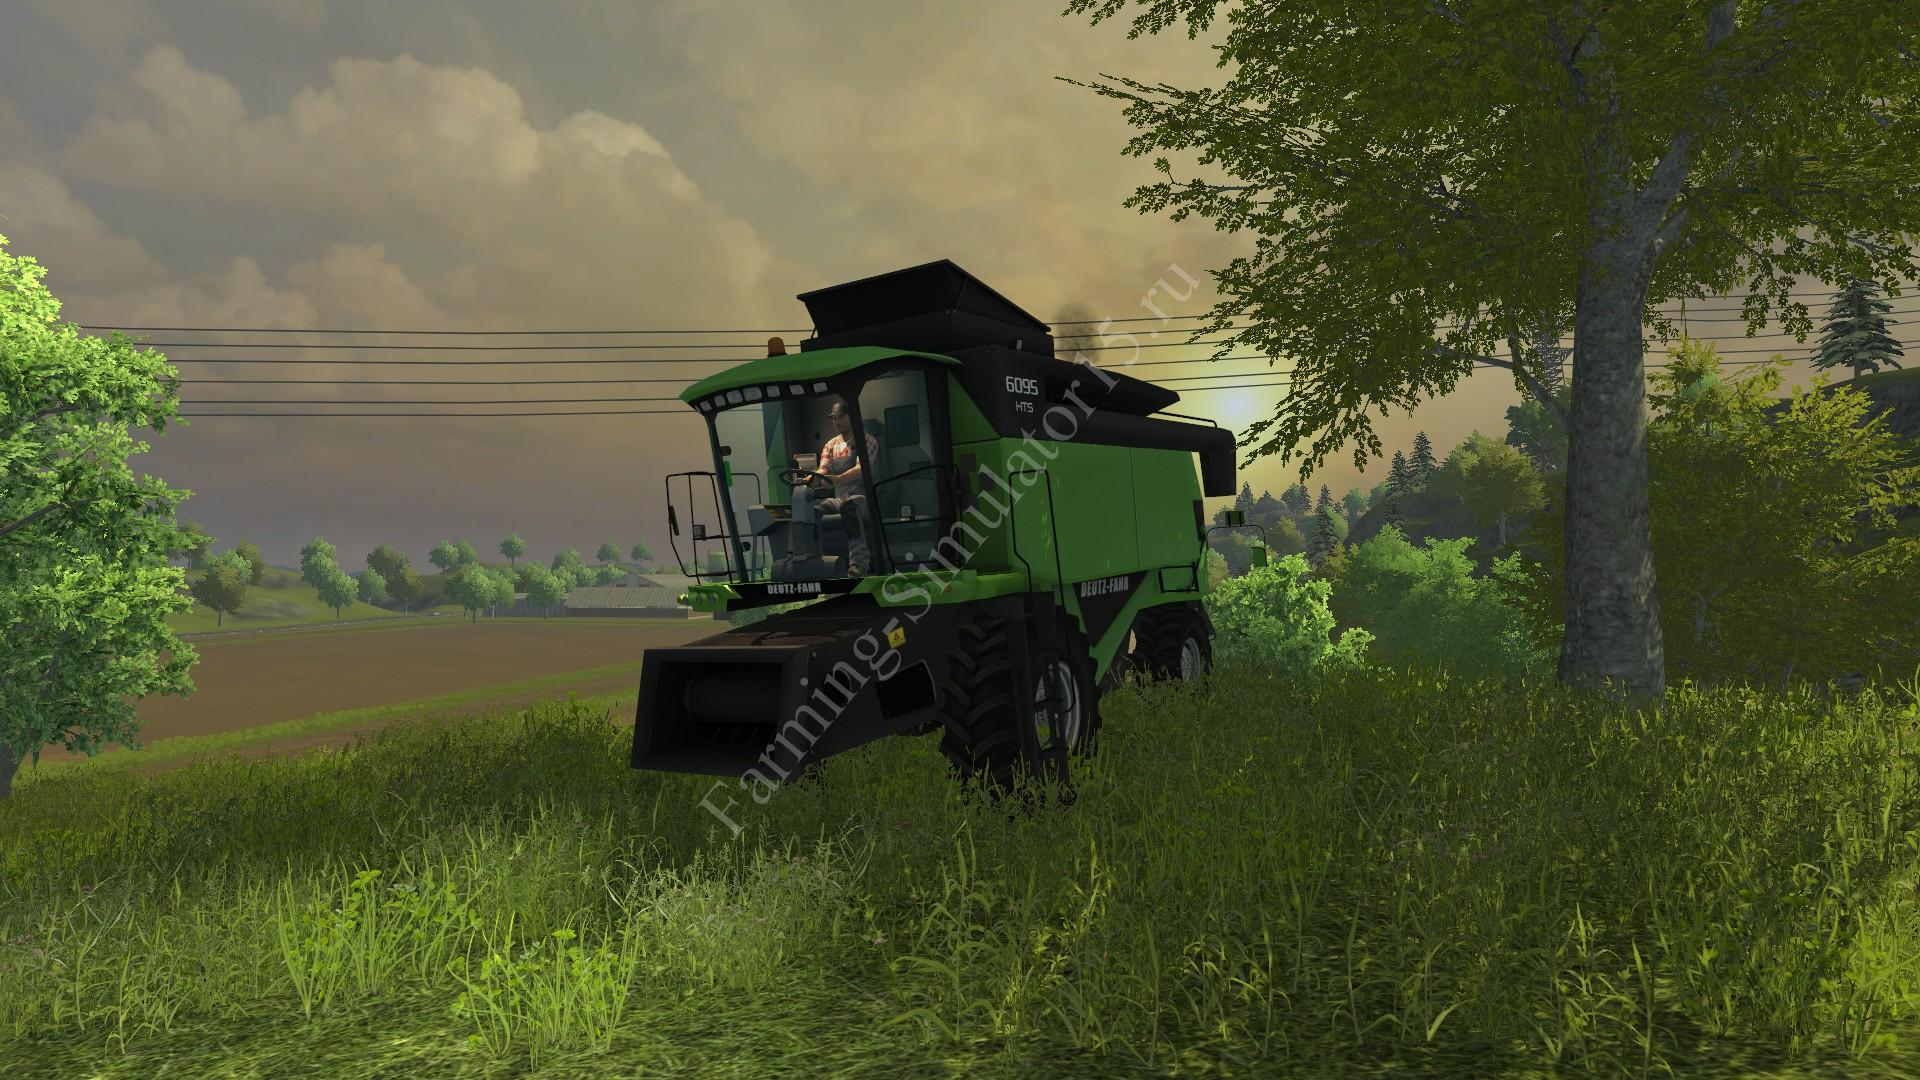 Мод комбайна Deutz Fahr 6095 HTS v 1.0 Farming Simulator 2013, Farming Simulator 13